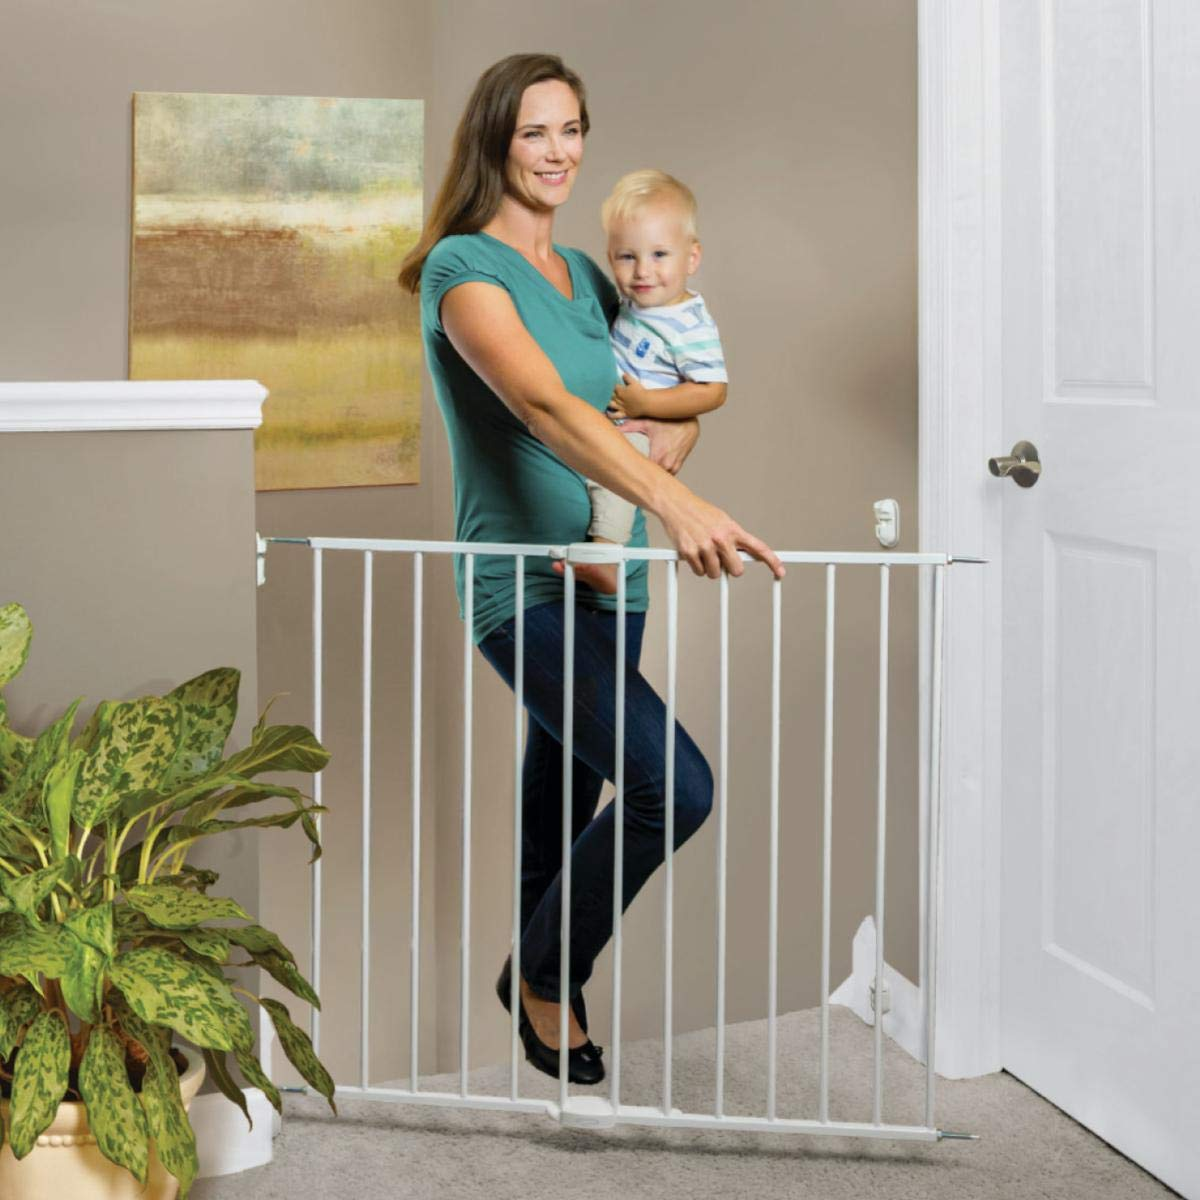 North States 40.55'' Wide Essential Stairway & Walkway Baby Gate: Ideal for Standard stairways. Sturdy Metal with Swing Control Hinge. Hardware Mount. Fits Openings 24.5''-40.55'' Wide (30'' Tall, White)